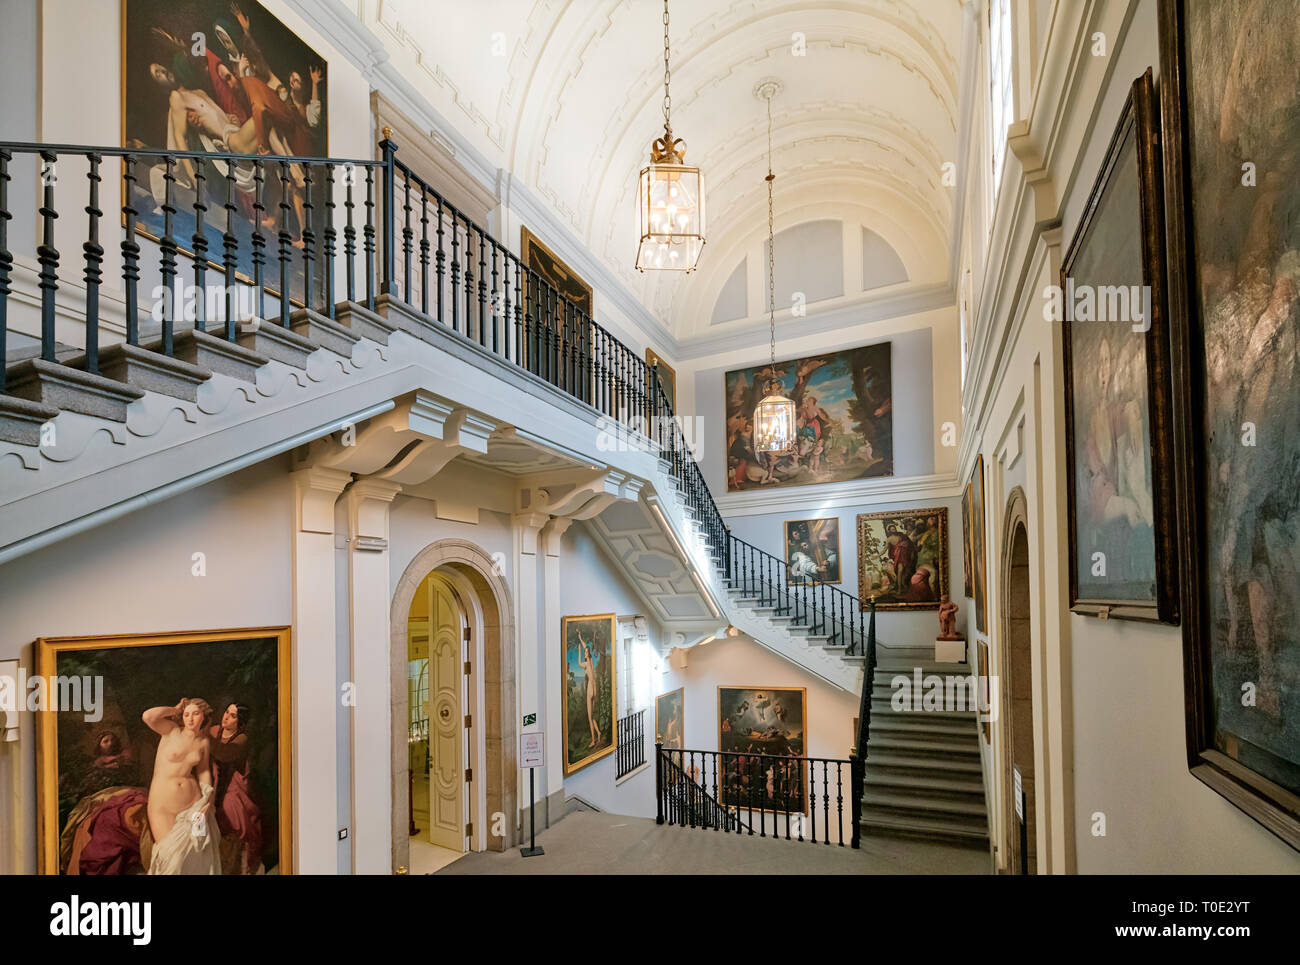 Museo Real Academia de Bellas Artes de San Fernando, Madrid, Museum Royal Academy of Fine Arts of San Fernando interior. Stock Photo